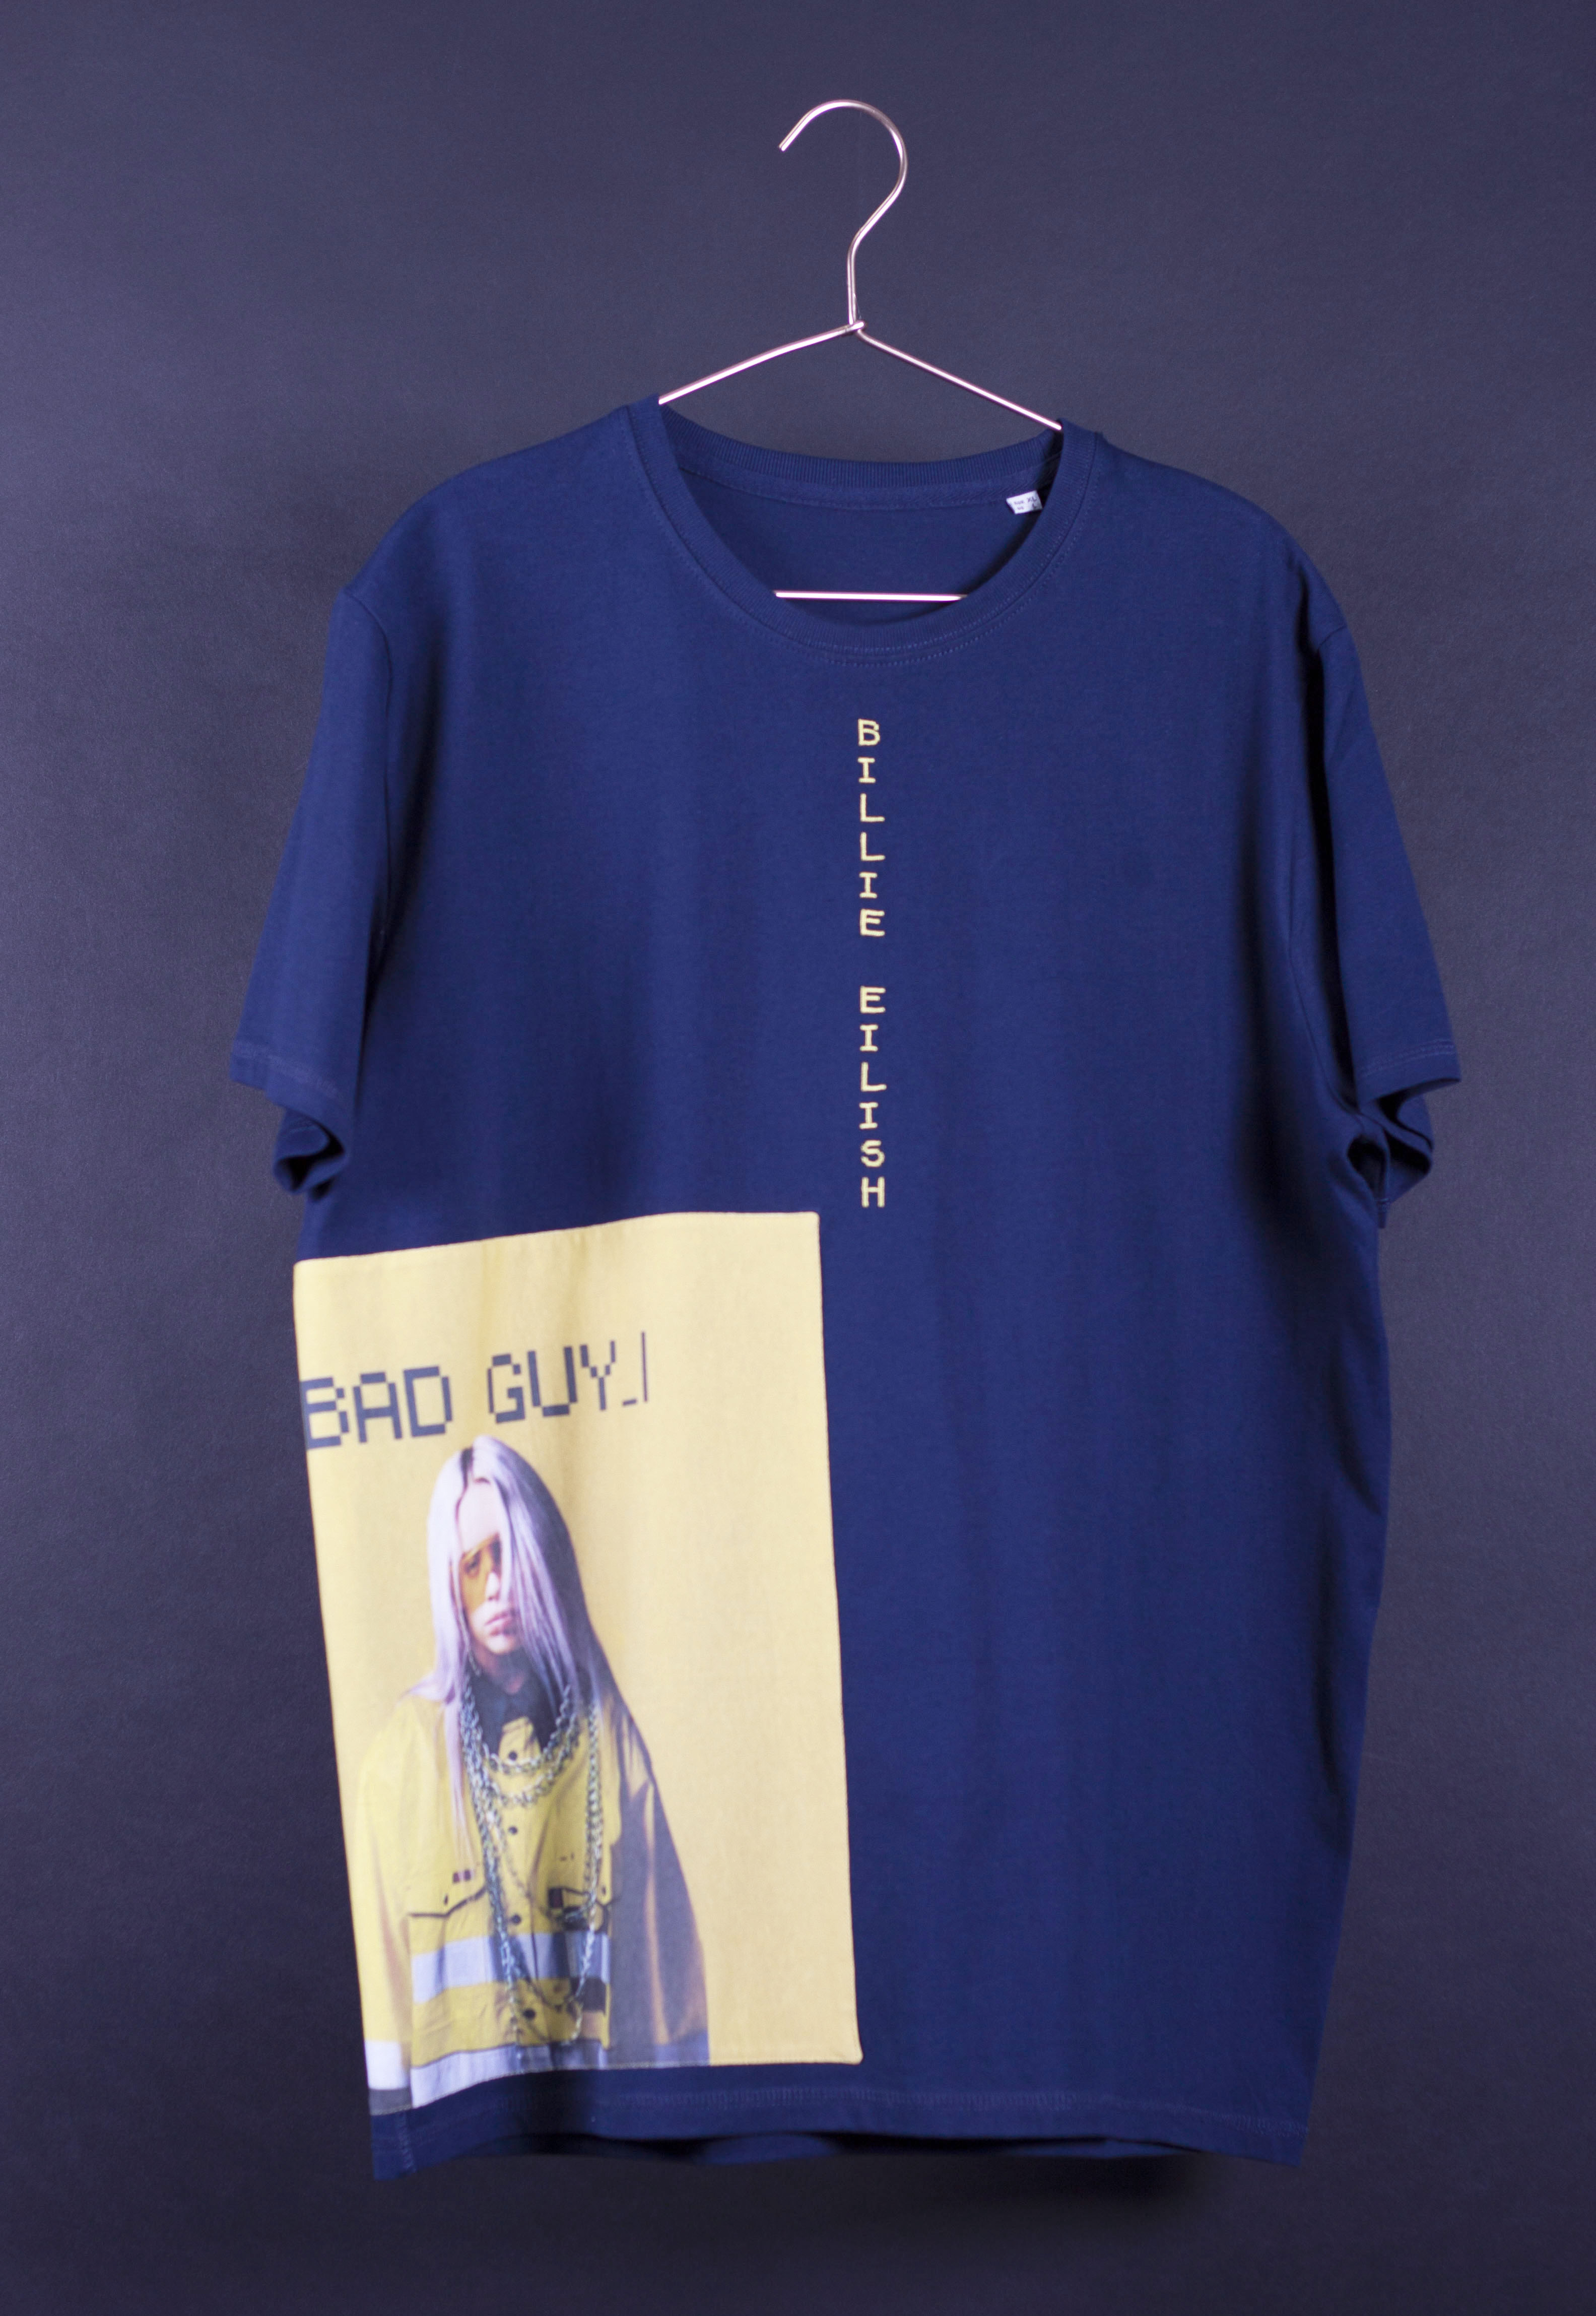 Camiseta Vestido Billie Eilish Edicion Limitada